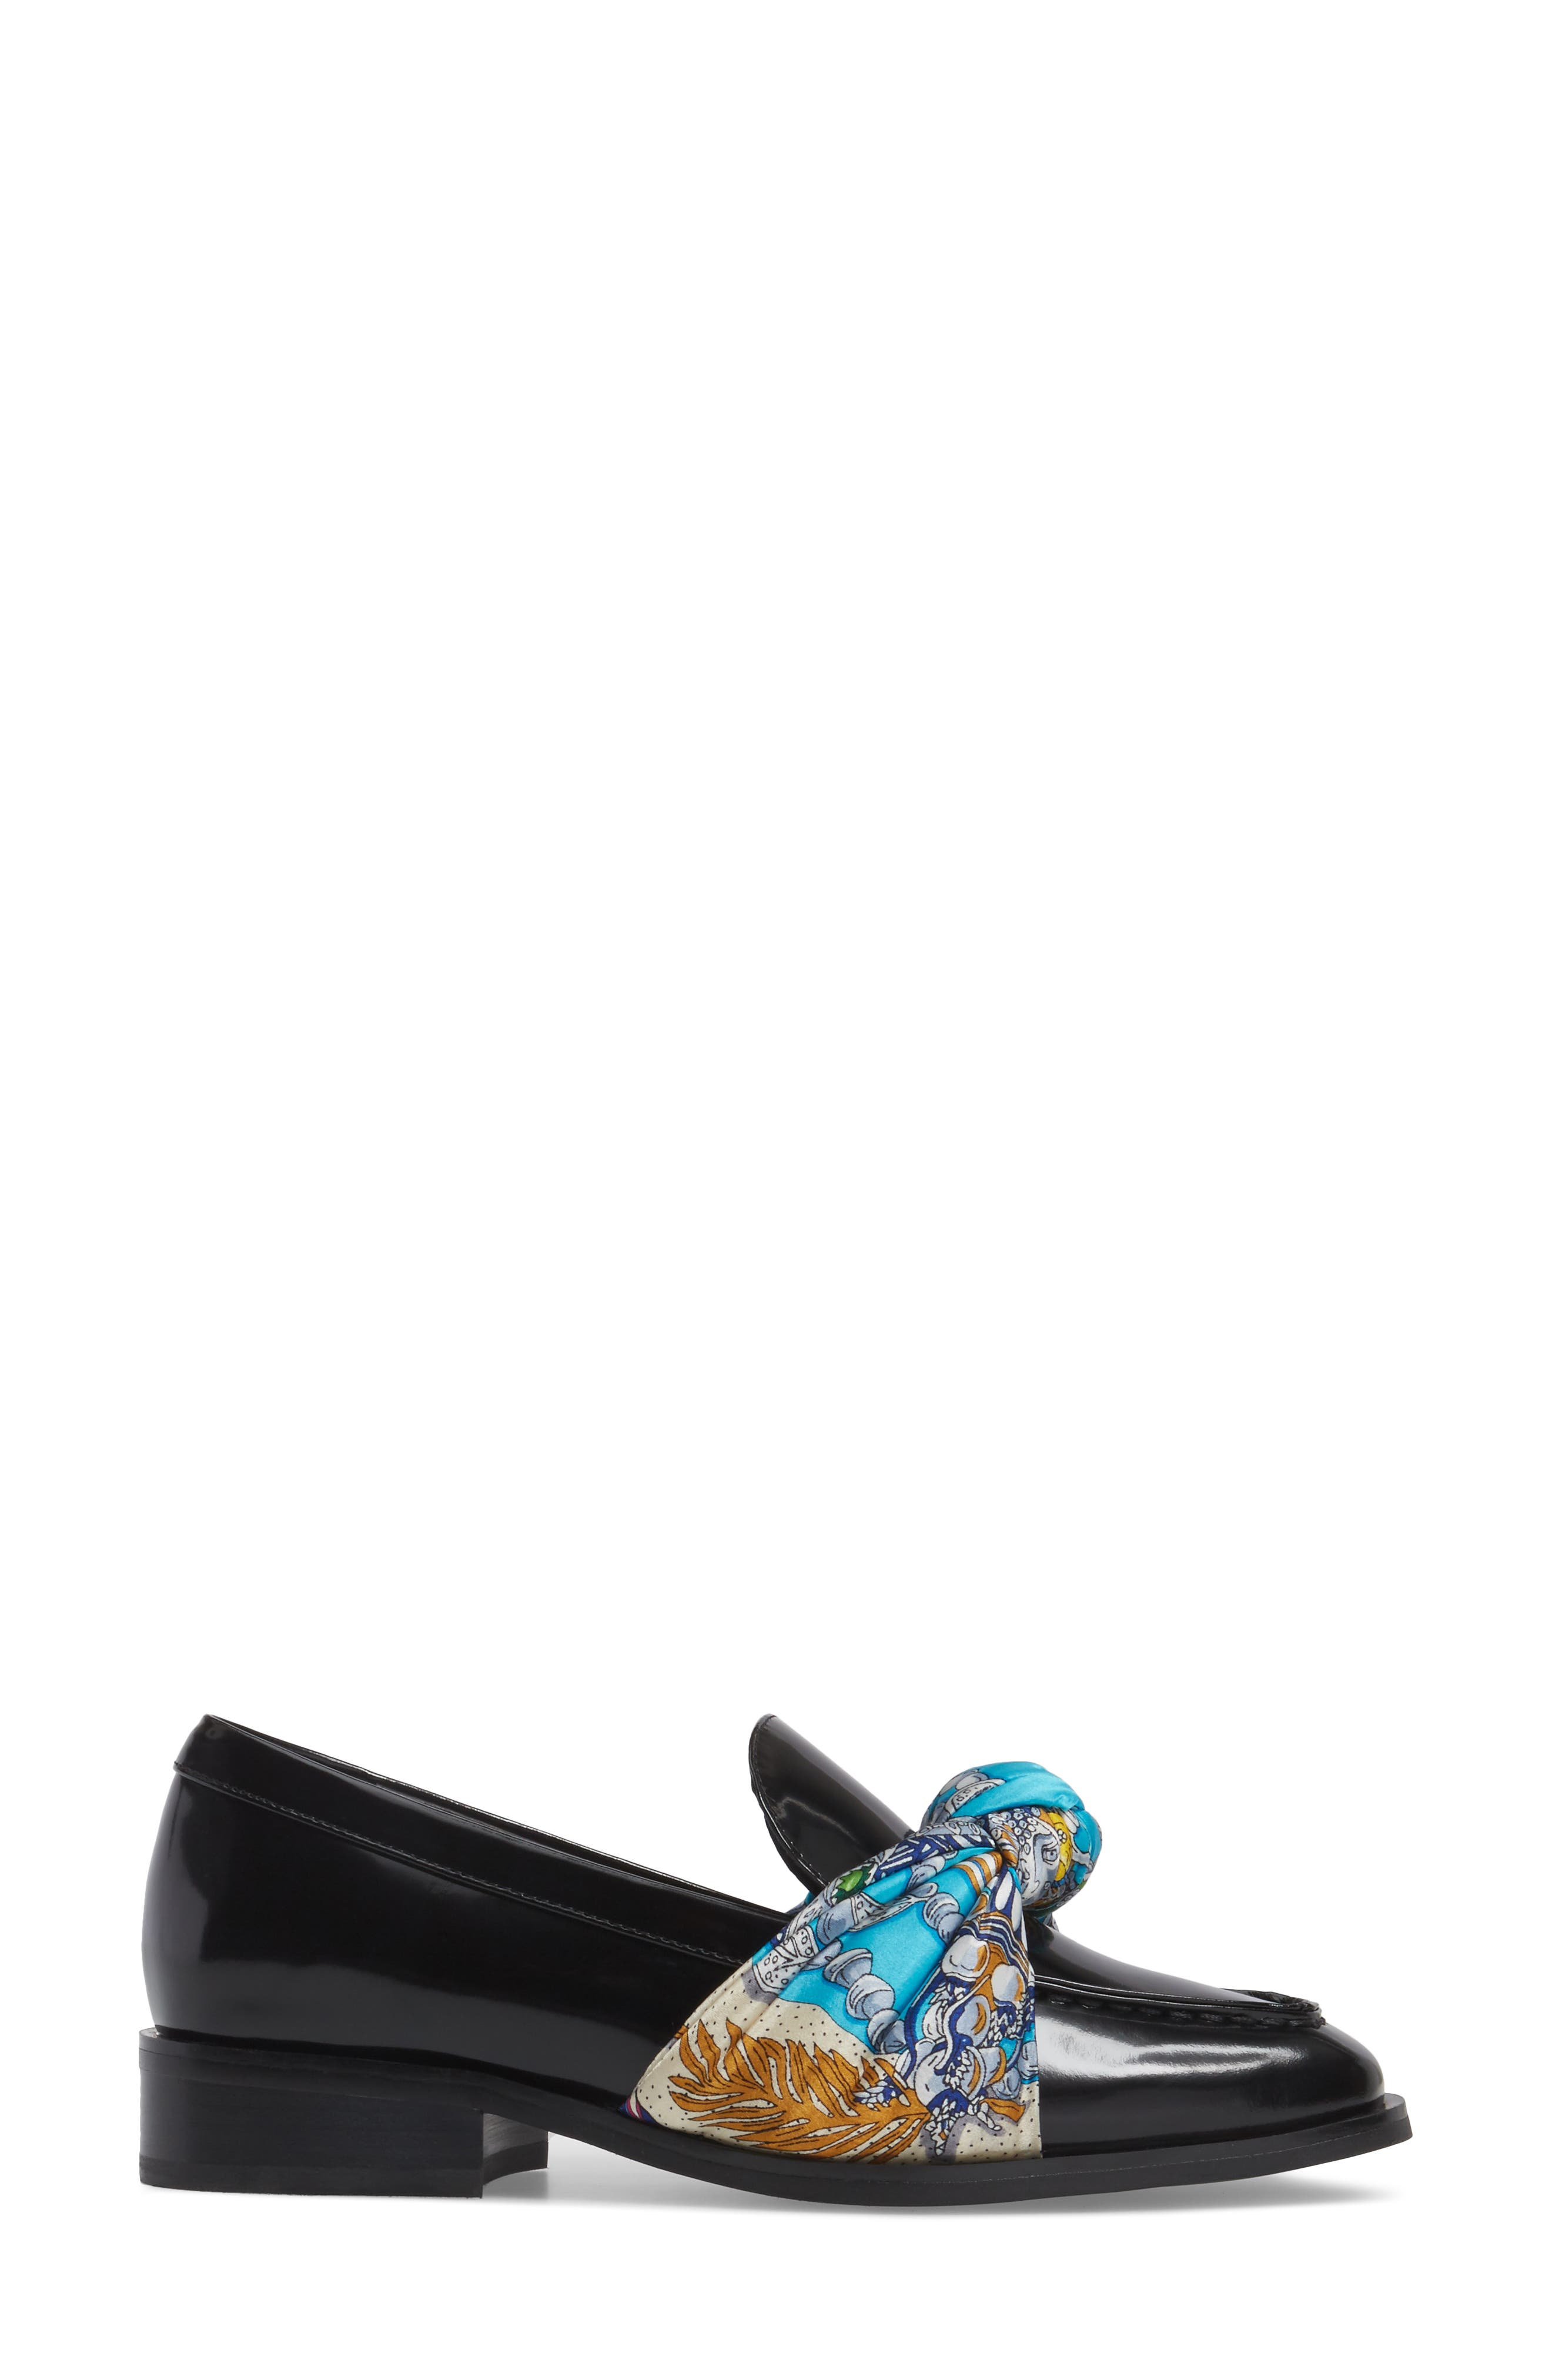 Alternate Image 3  - Jeffrey Campbell Bollero Loafer (Women)